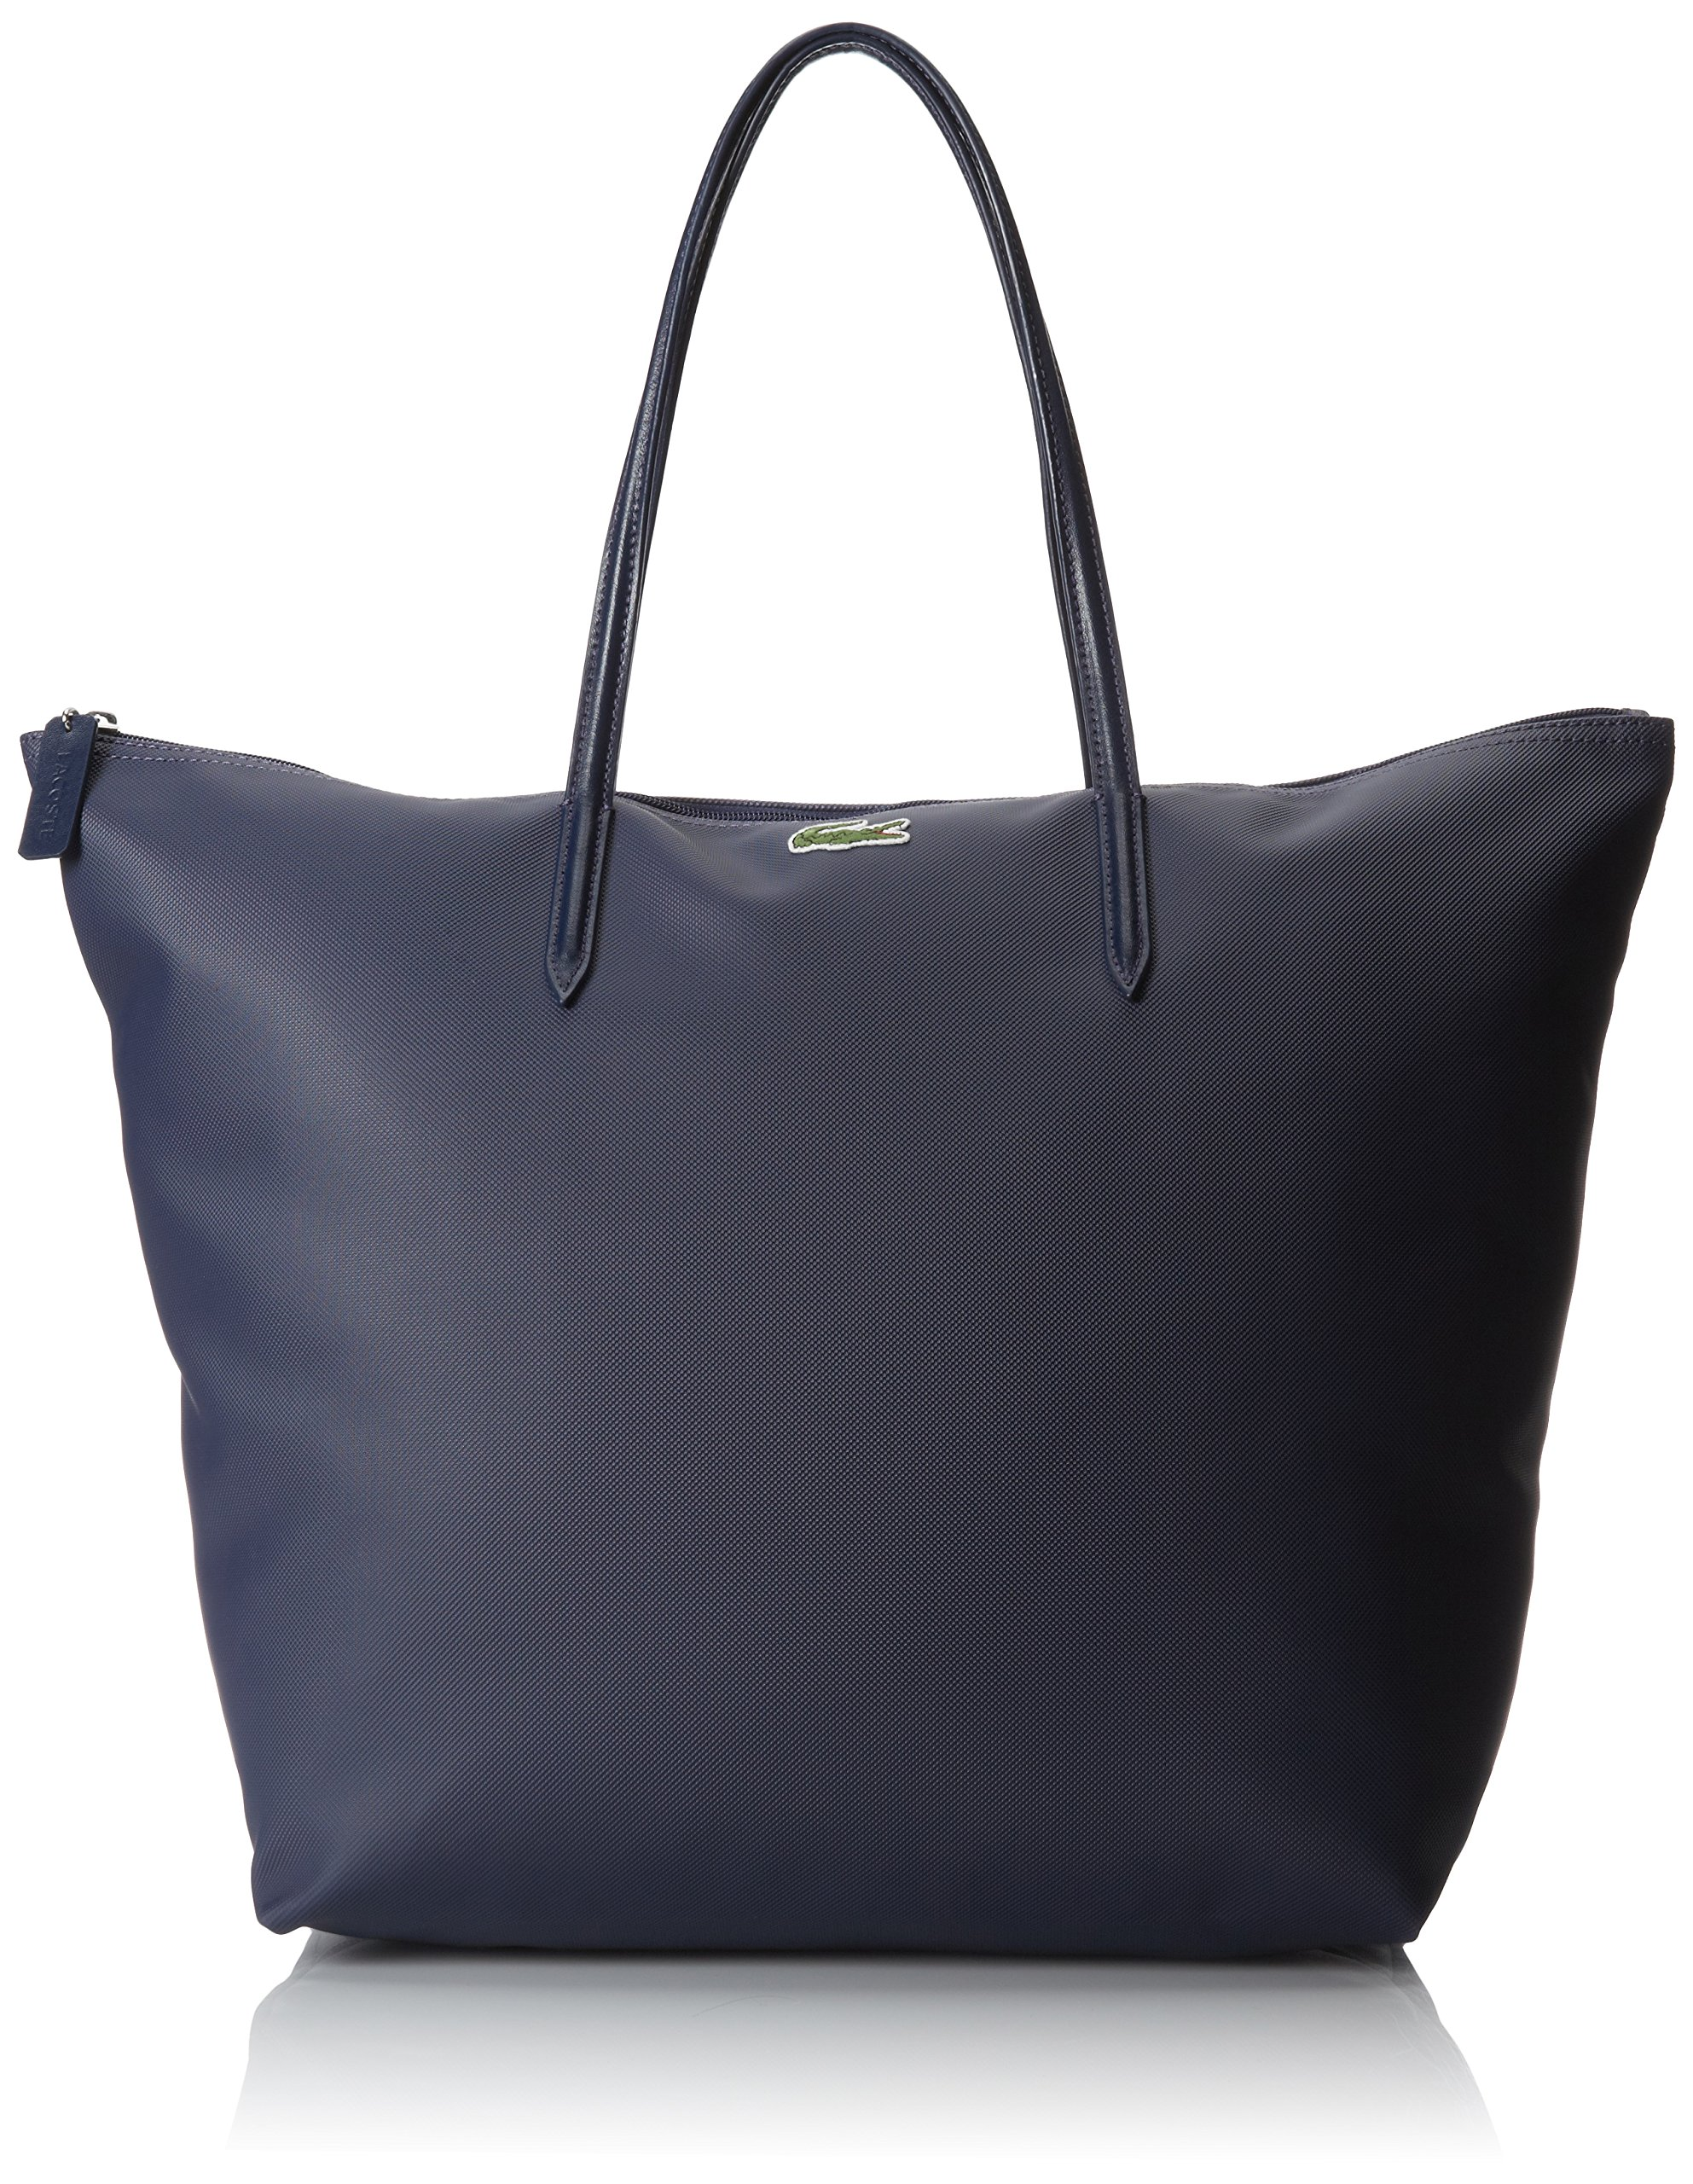 Lacoste Women's Concept Travel Shopping Bag, Shadow Blue, One Size by Lacoste